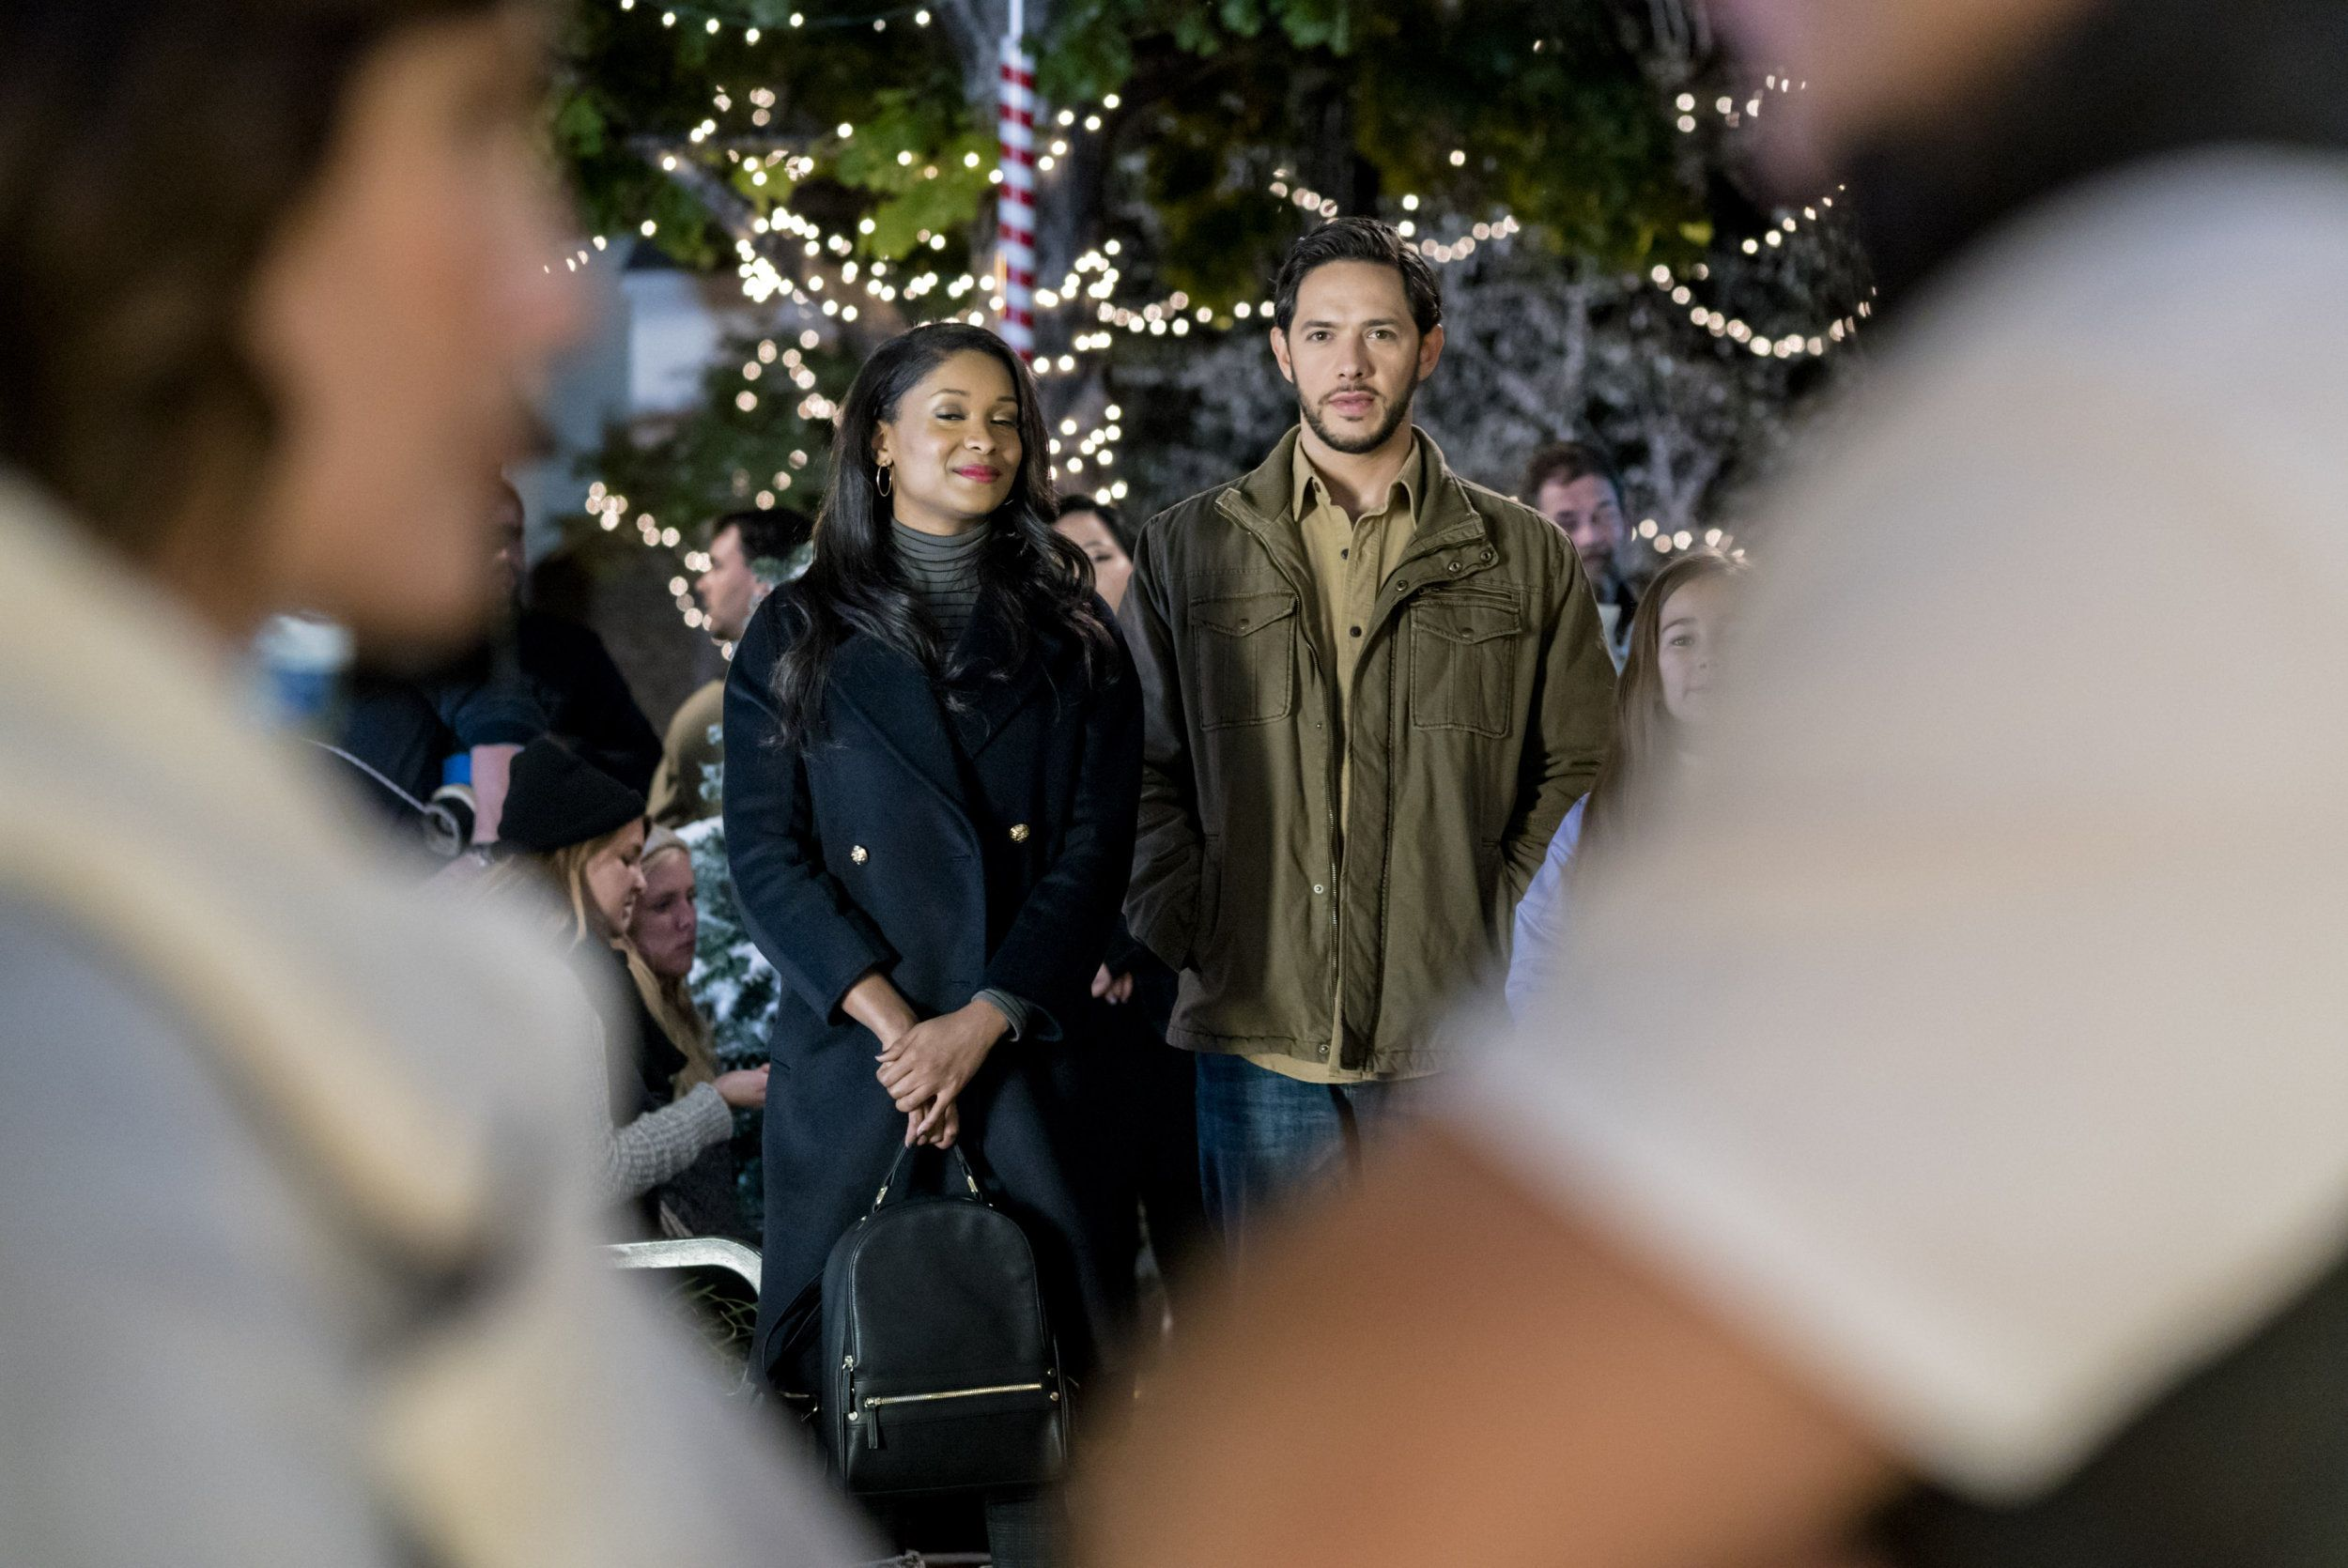 Taylor Cole Christmas In Homestead.Watch Video From The Hallmark Channel Original Movie